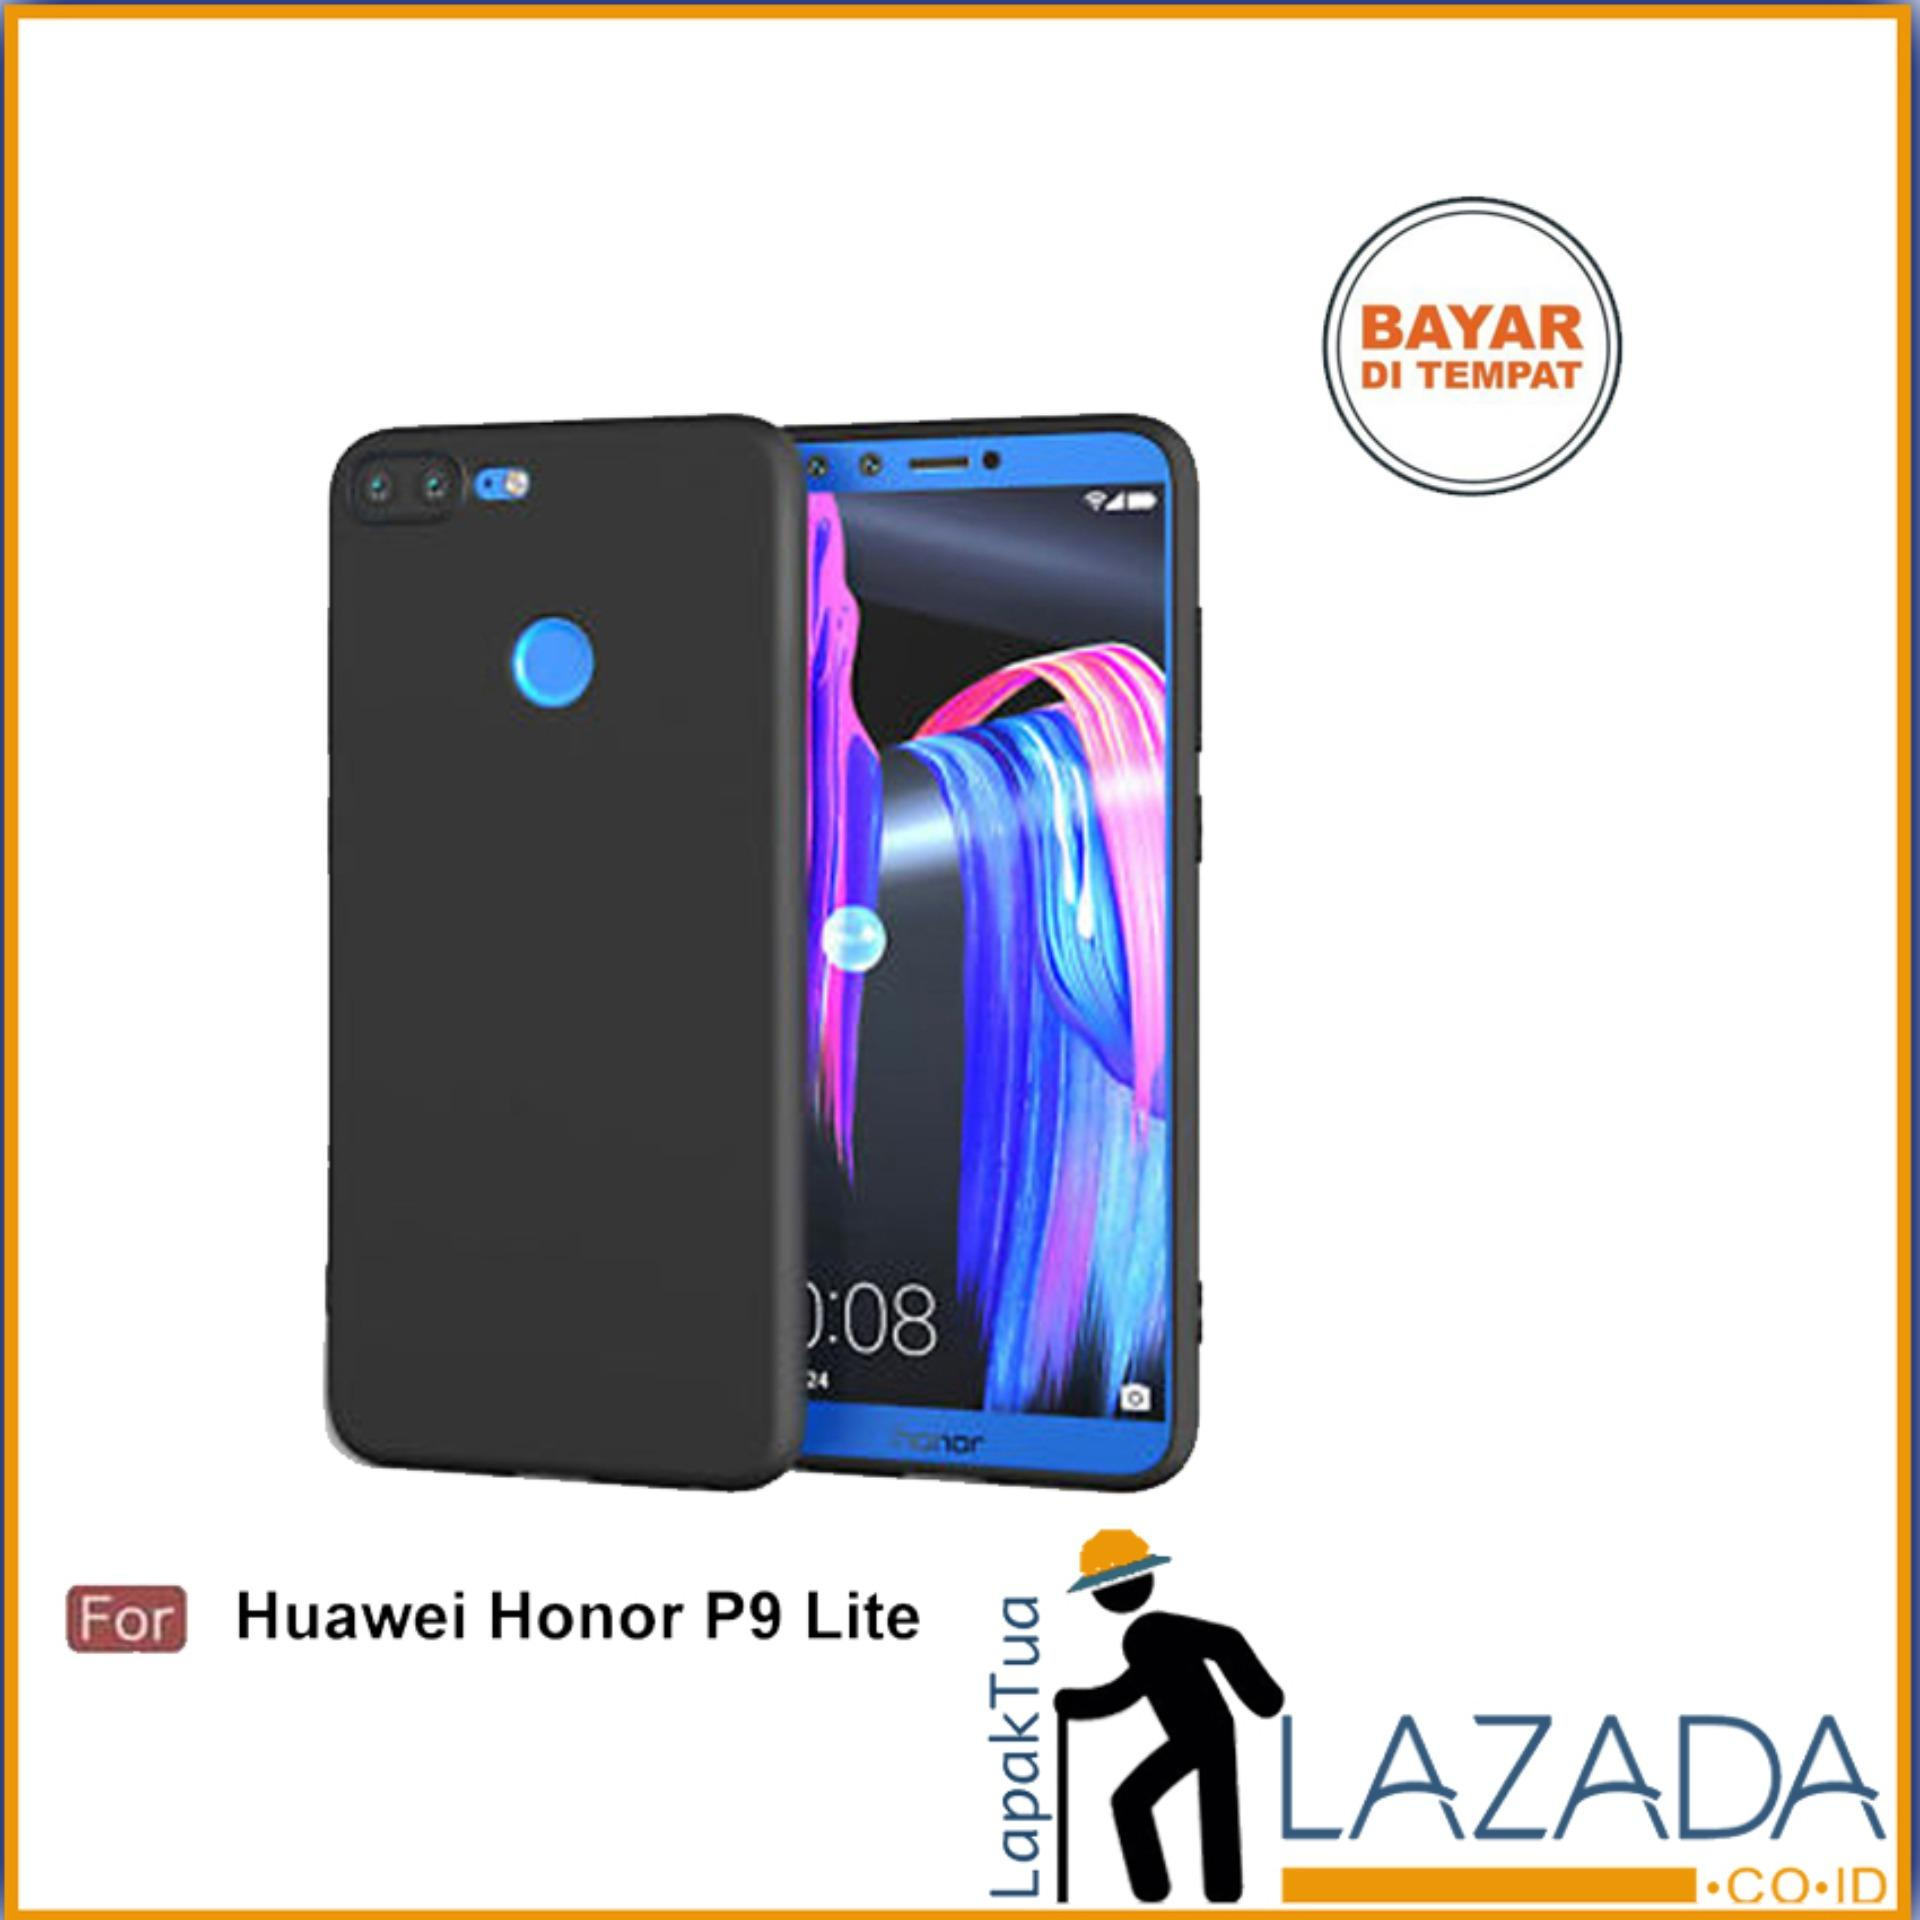 Lapak Case - Softcase Midnight Black Matte Case Ultraslim Baby Skin Untuk Huawei Honor 9 Lite